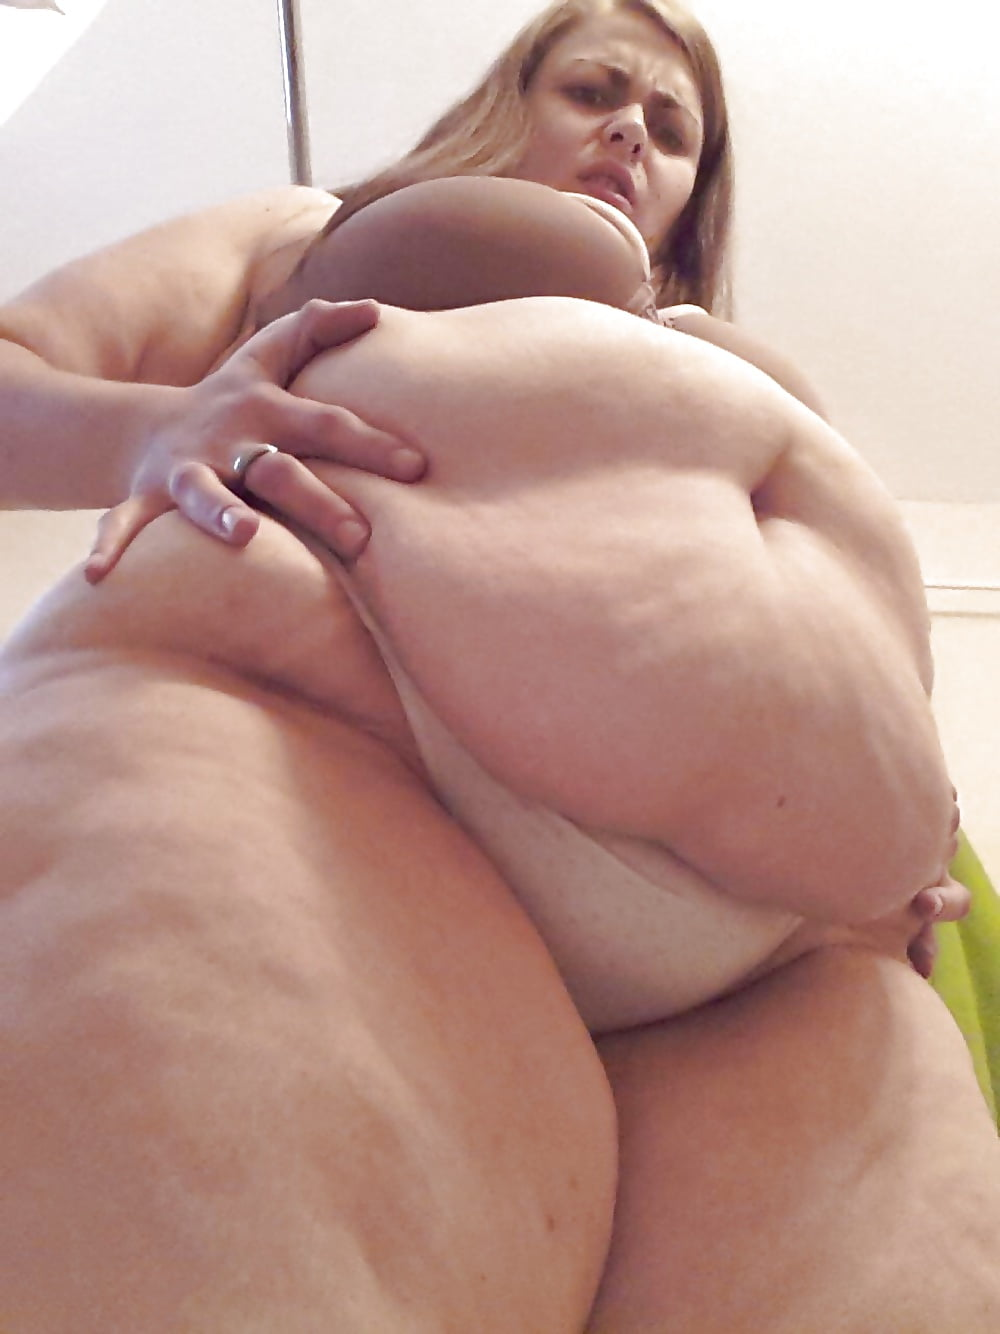 Chubby belly girls nude tube, old horny pussy